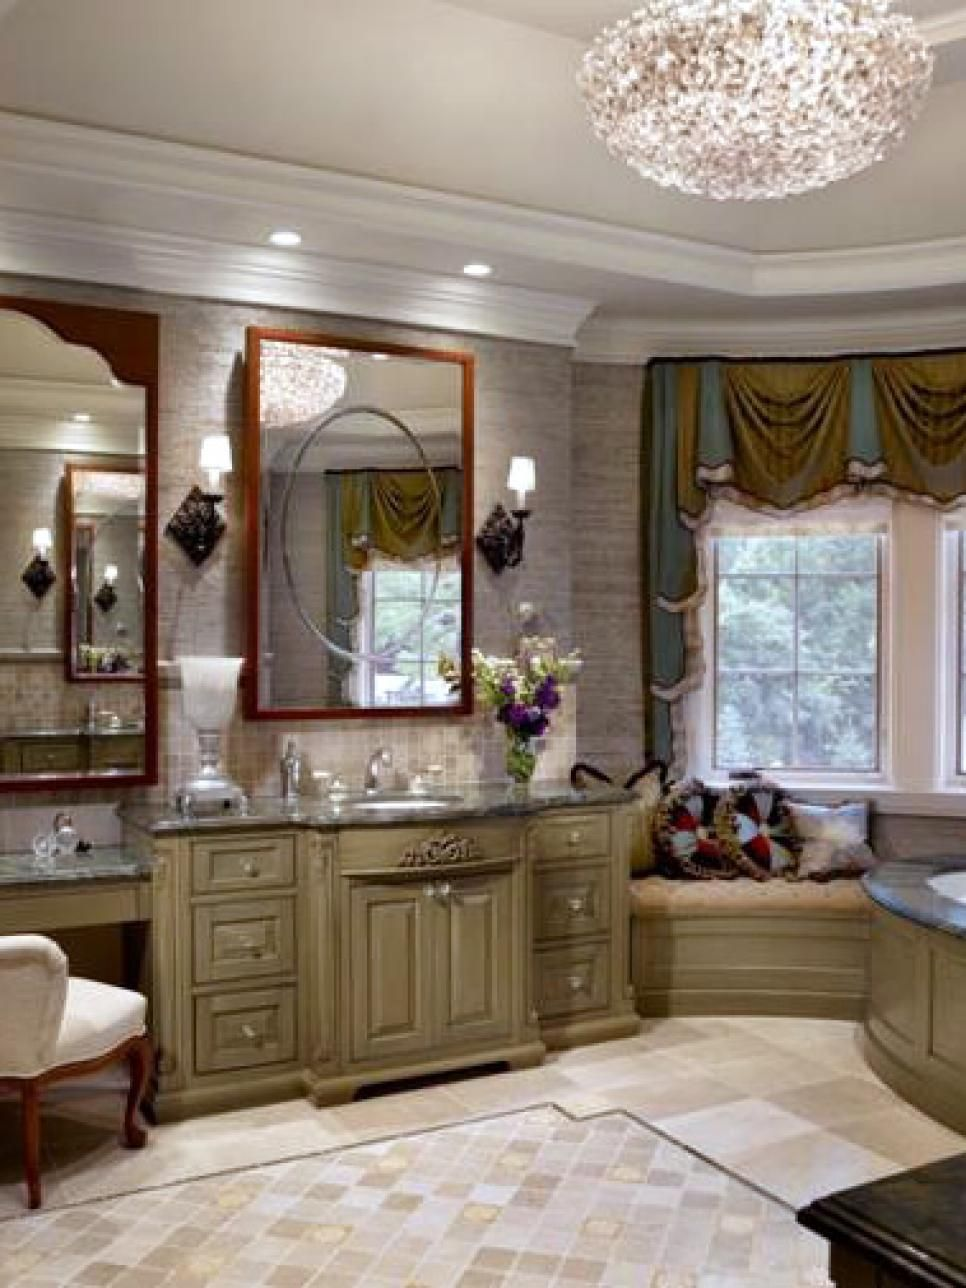 13 Dreamy Bathroom Lighting Ideas Bathroom Ideas Designs